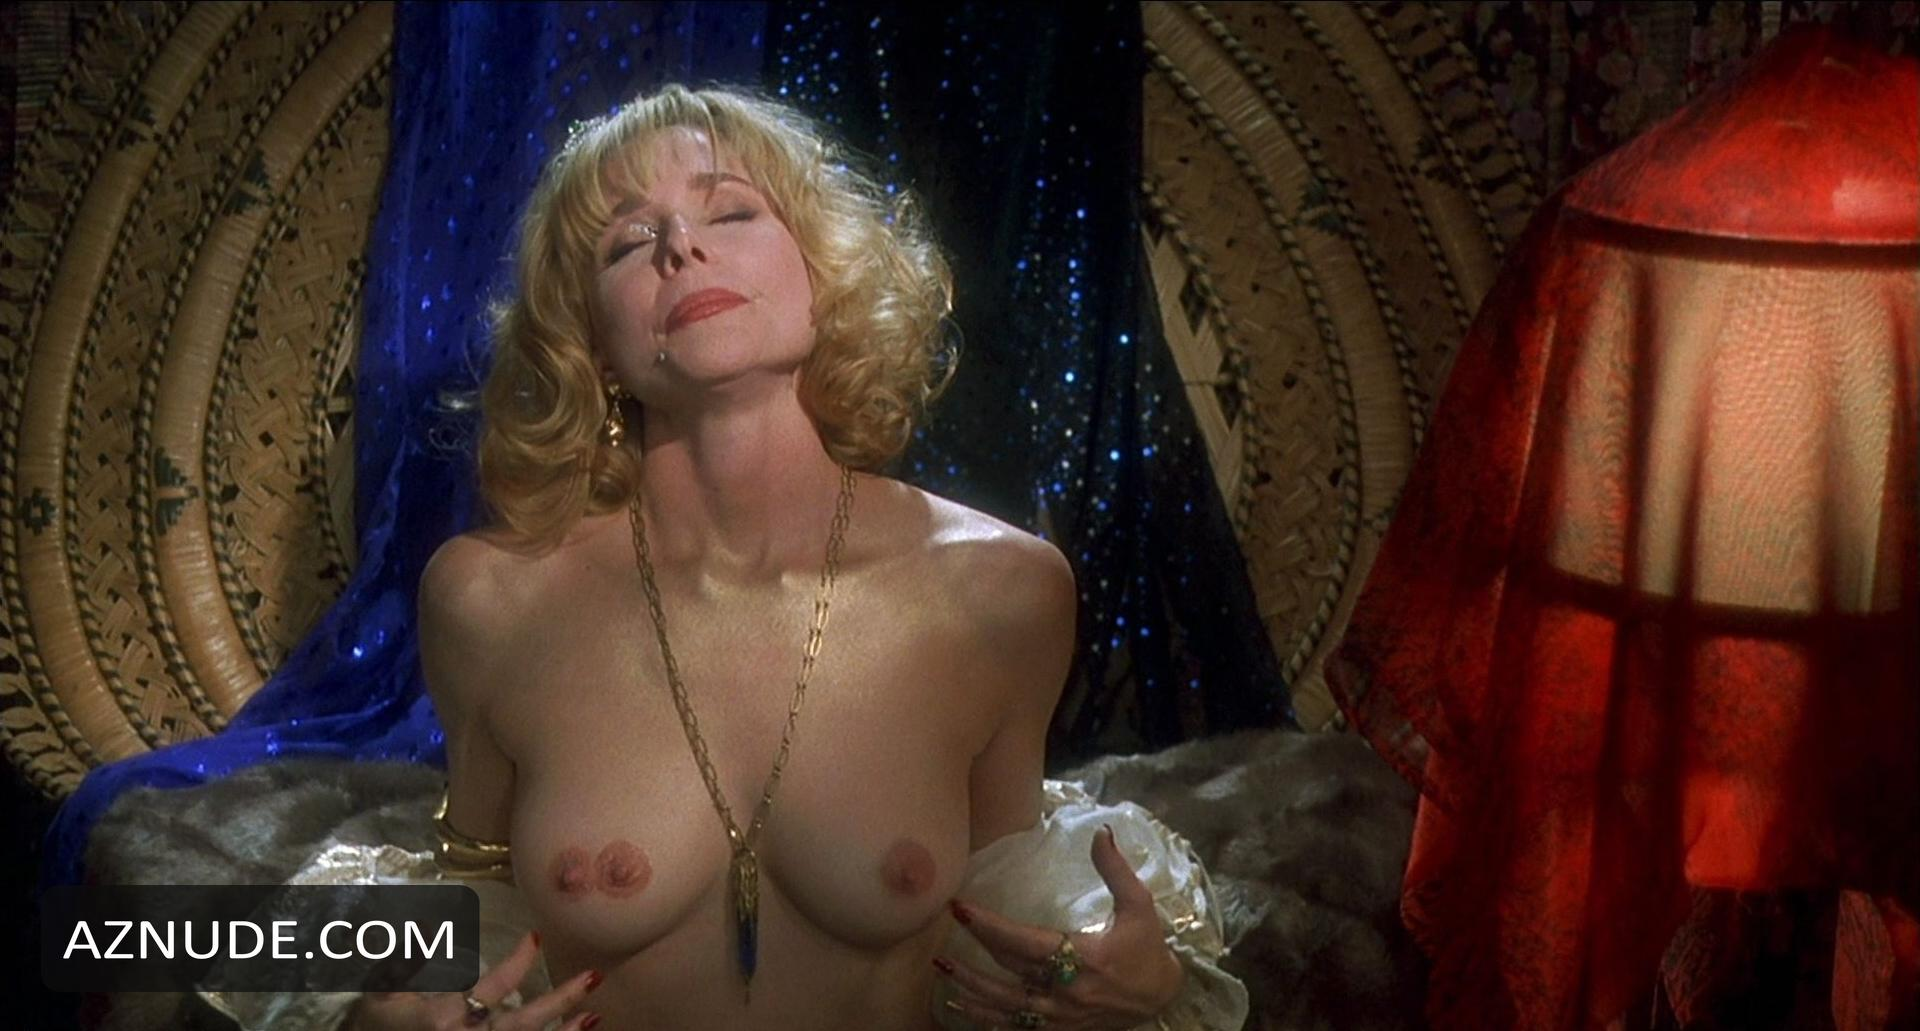 joey lauren adams tits